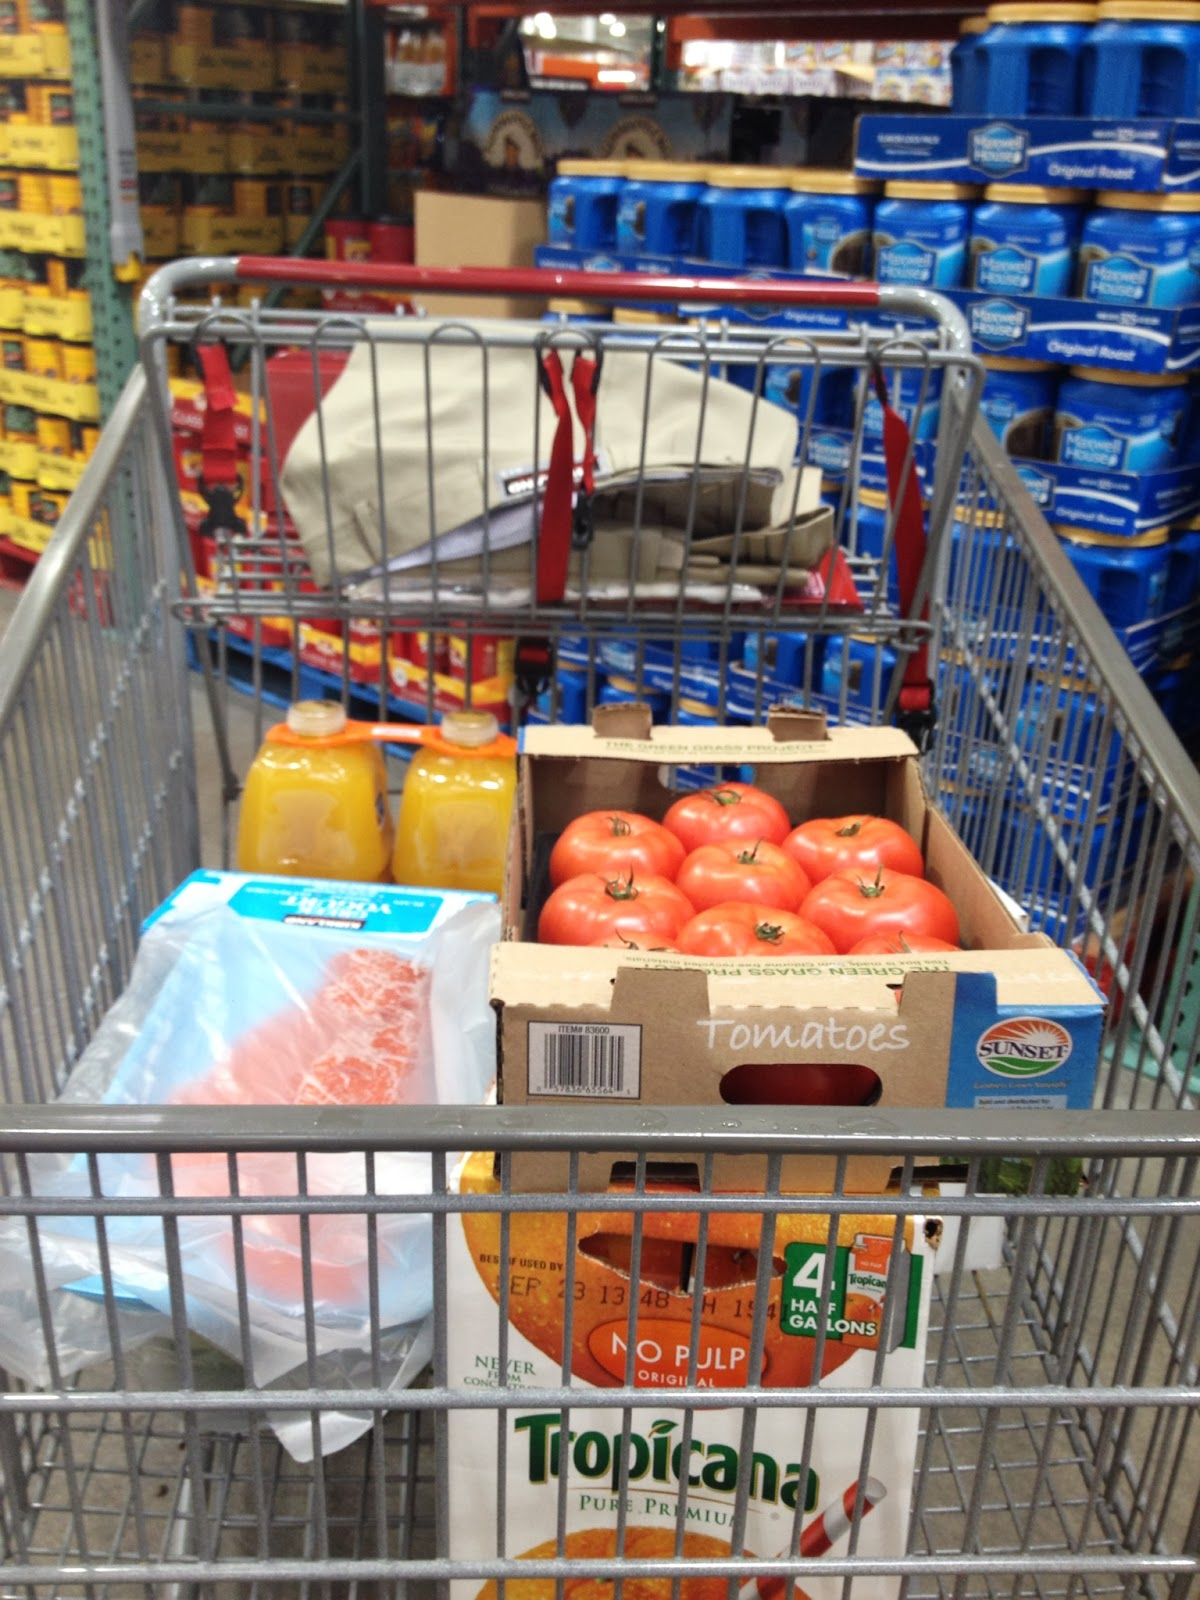 do you really know what you re eating picking up more than a few my first to costco whole in hackensack after a brief vacation netted fresh wild sockeye salmon fillet tropicana orange juice beefsteak tomatoes